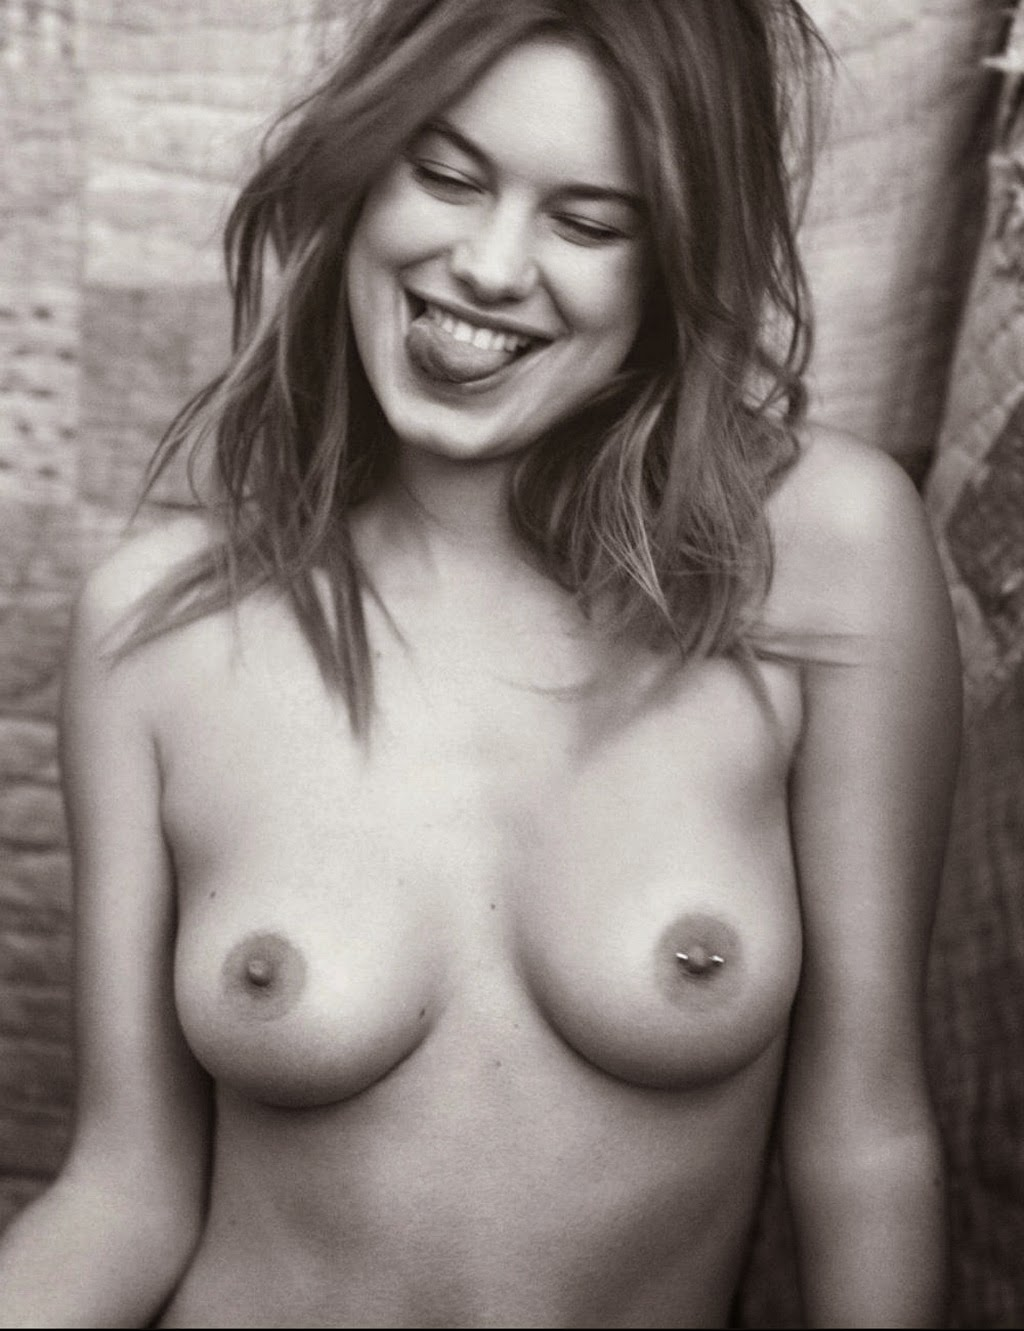 camille rowe 02 - CELEBS NUDE : HOT AND SENSUAL FOR MEN